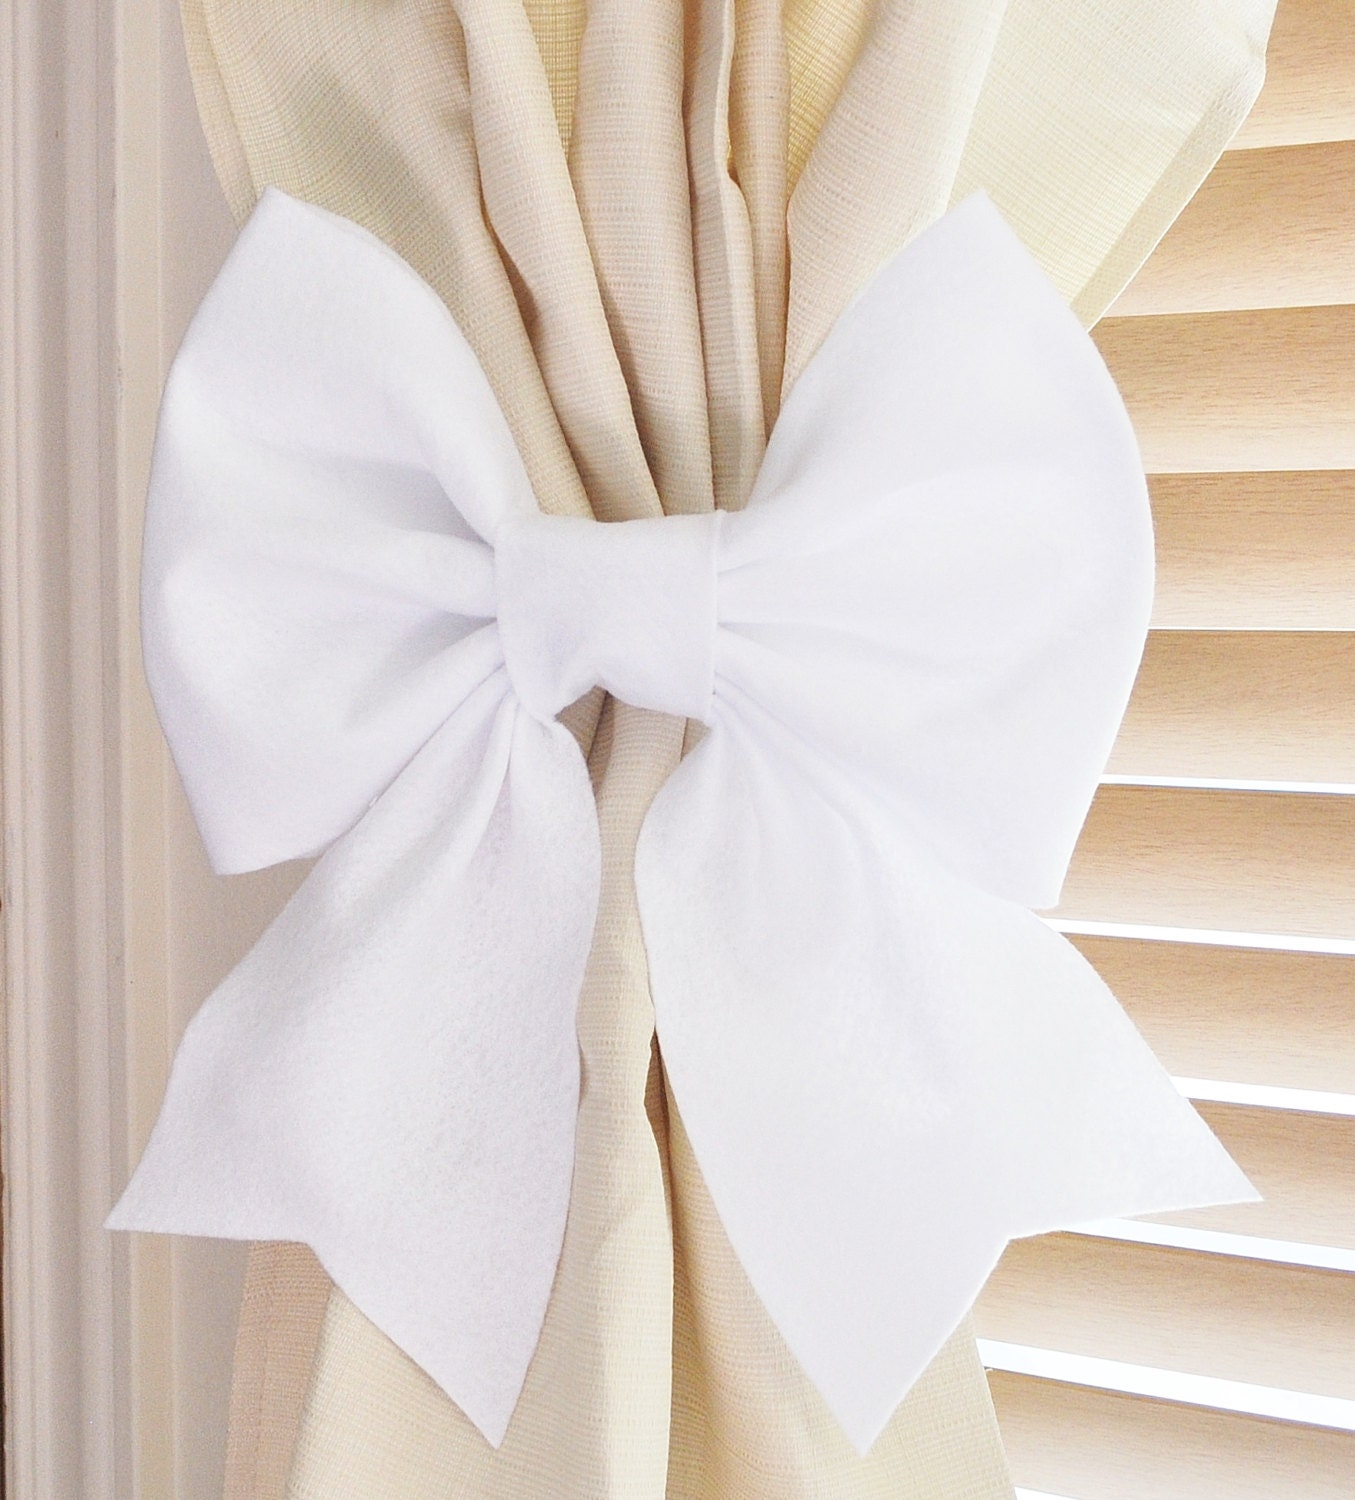 white bow curtain tie backs two decorative tiebacks by bedbuggs. Black Bedroom Furniture Sets. Home Design Ideas